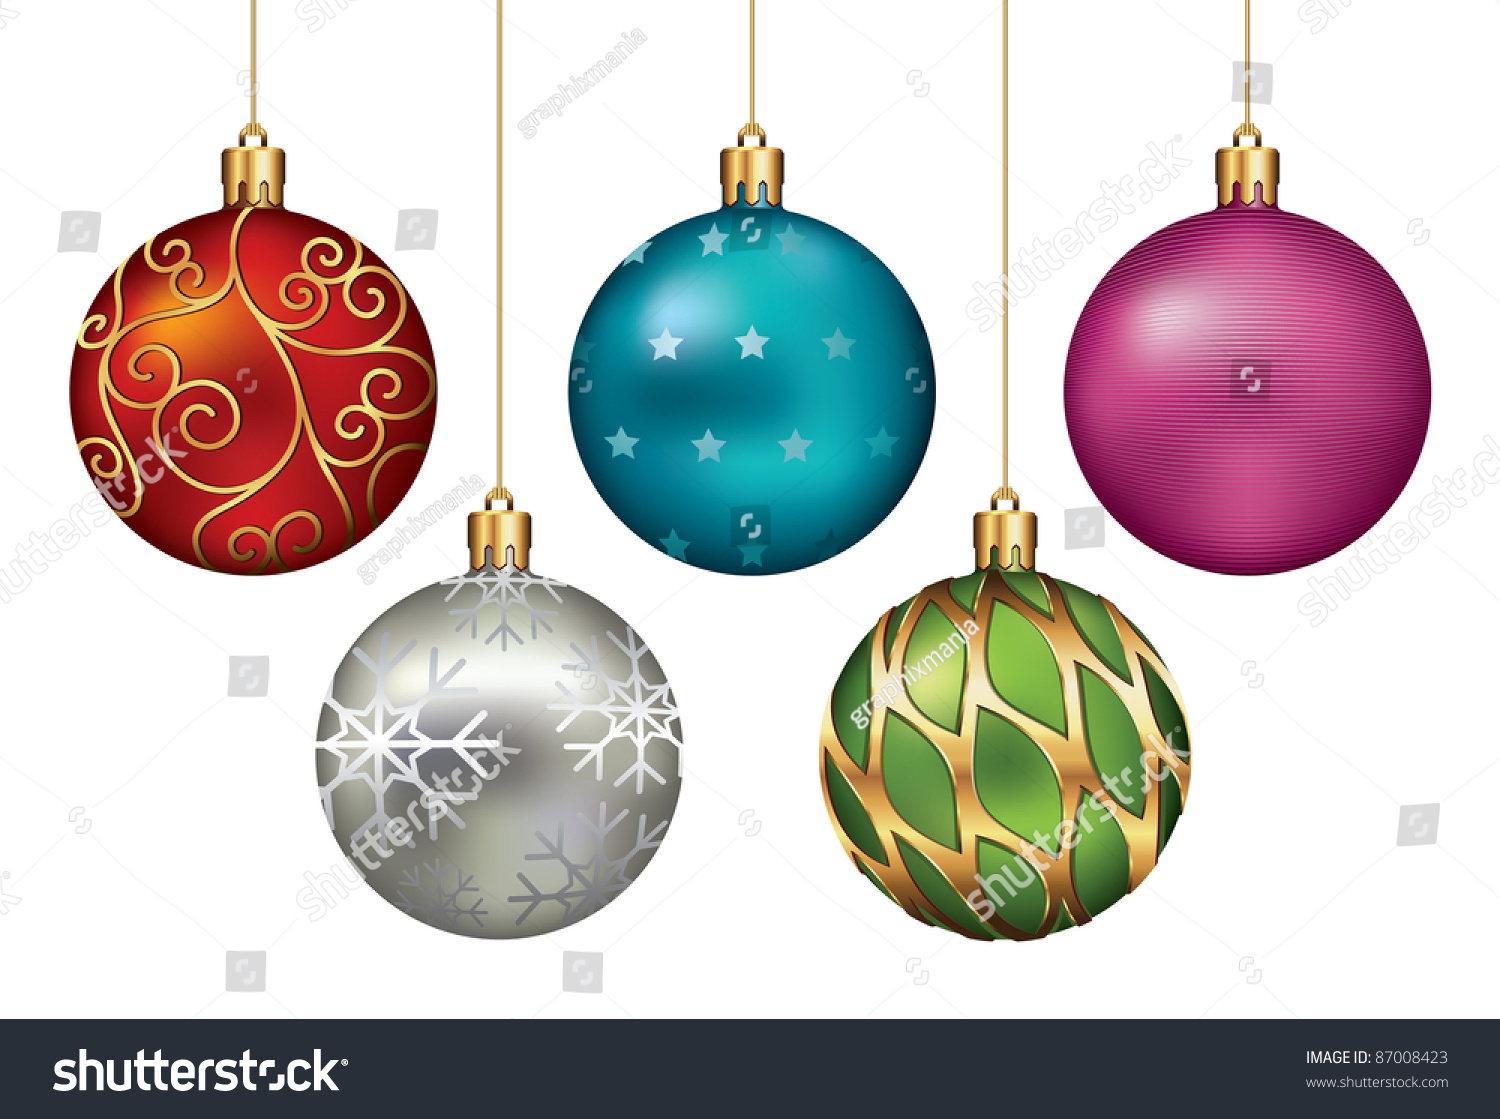 Native american ornaments - Native American Christmas Ornaments Christmas Ornaments Hanging On Gold Thread Vector Illustration Stock Vector